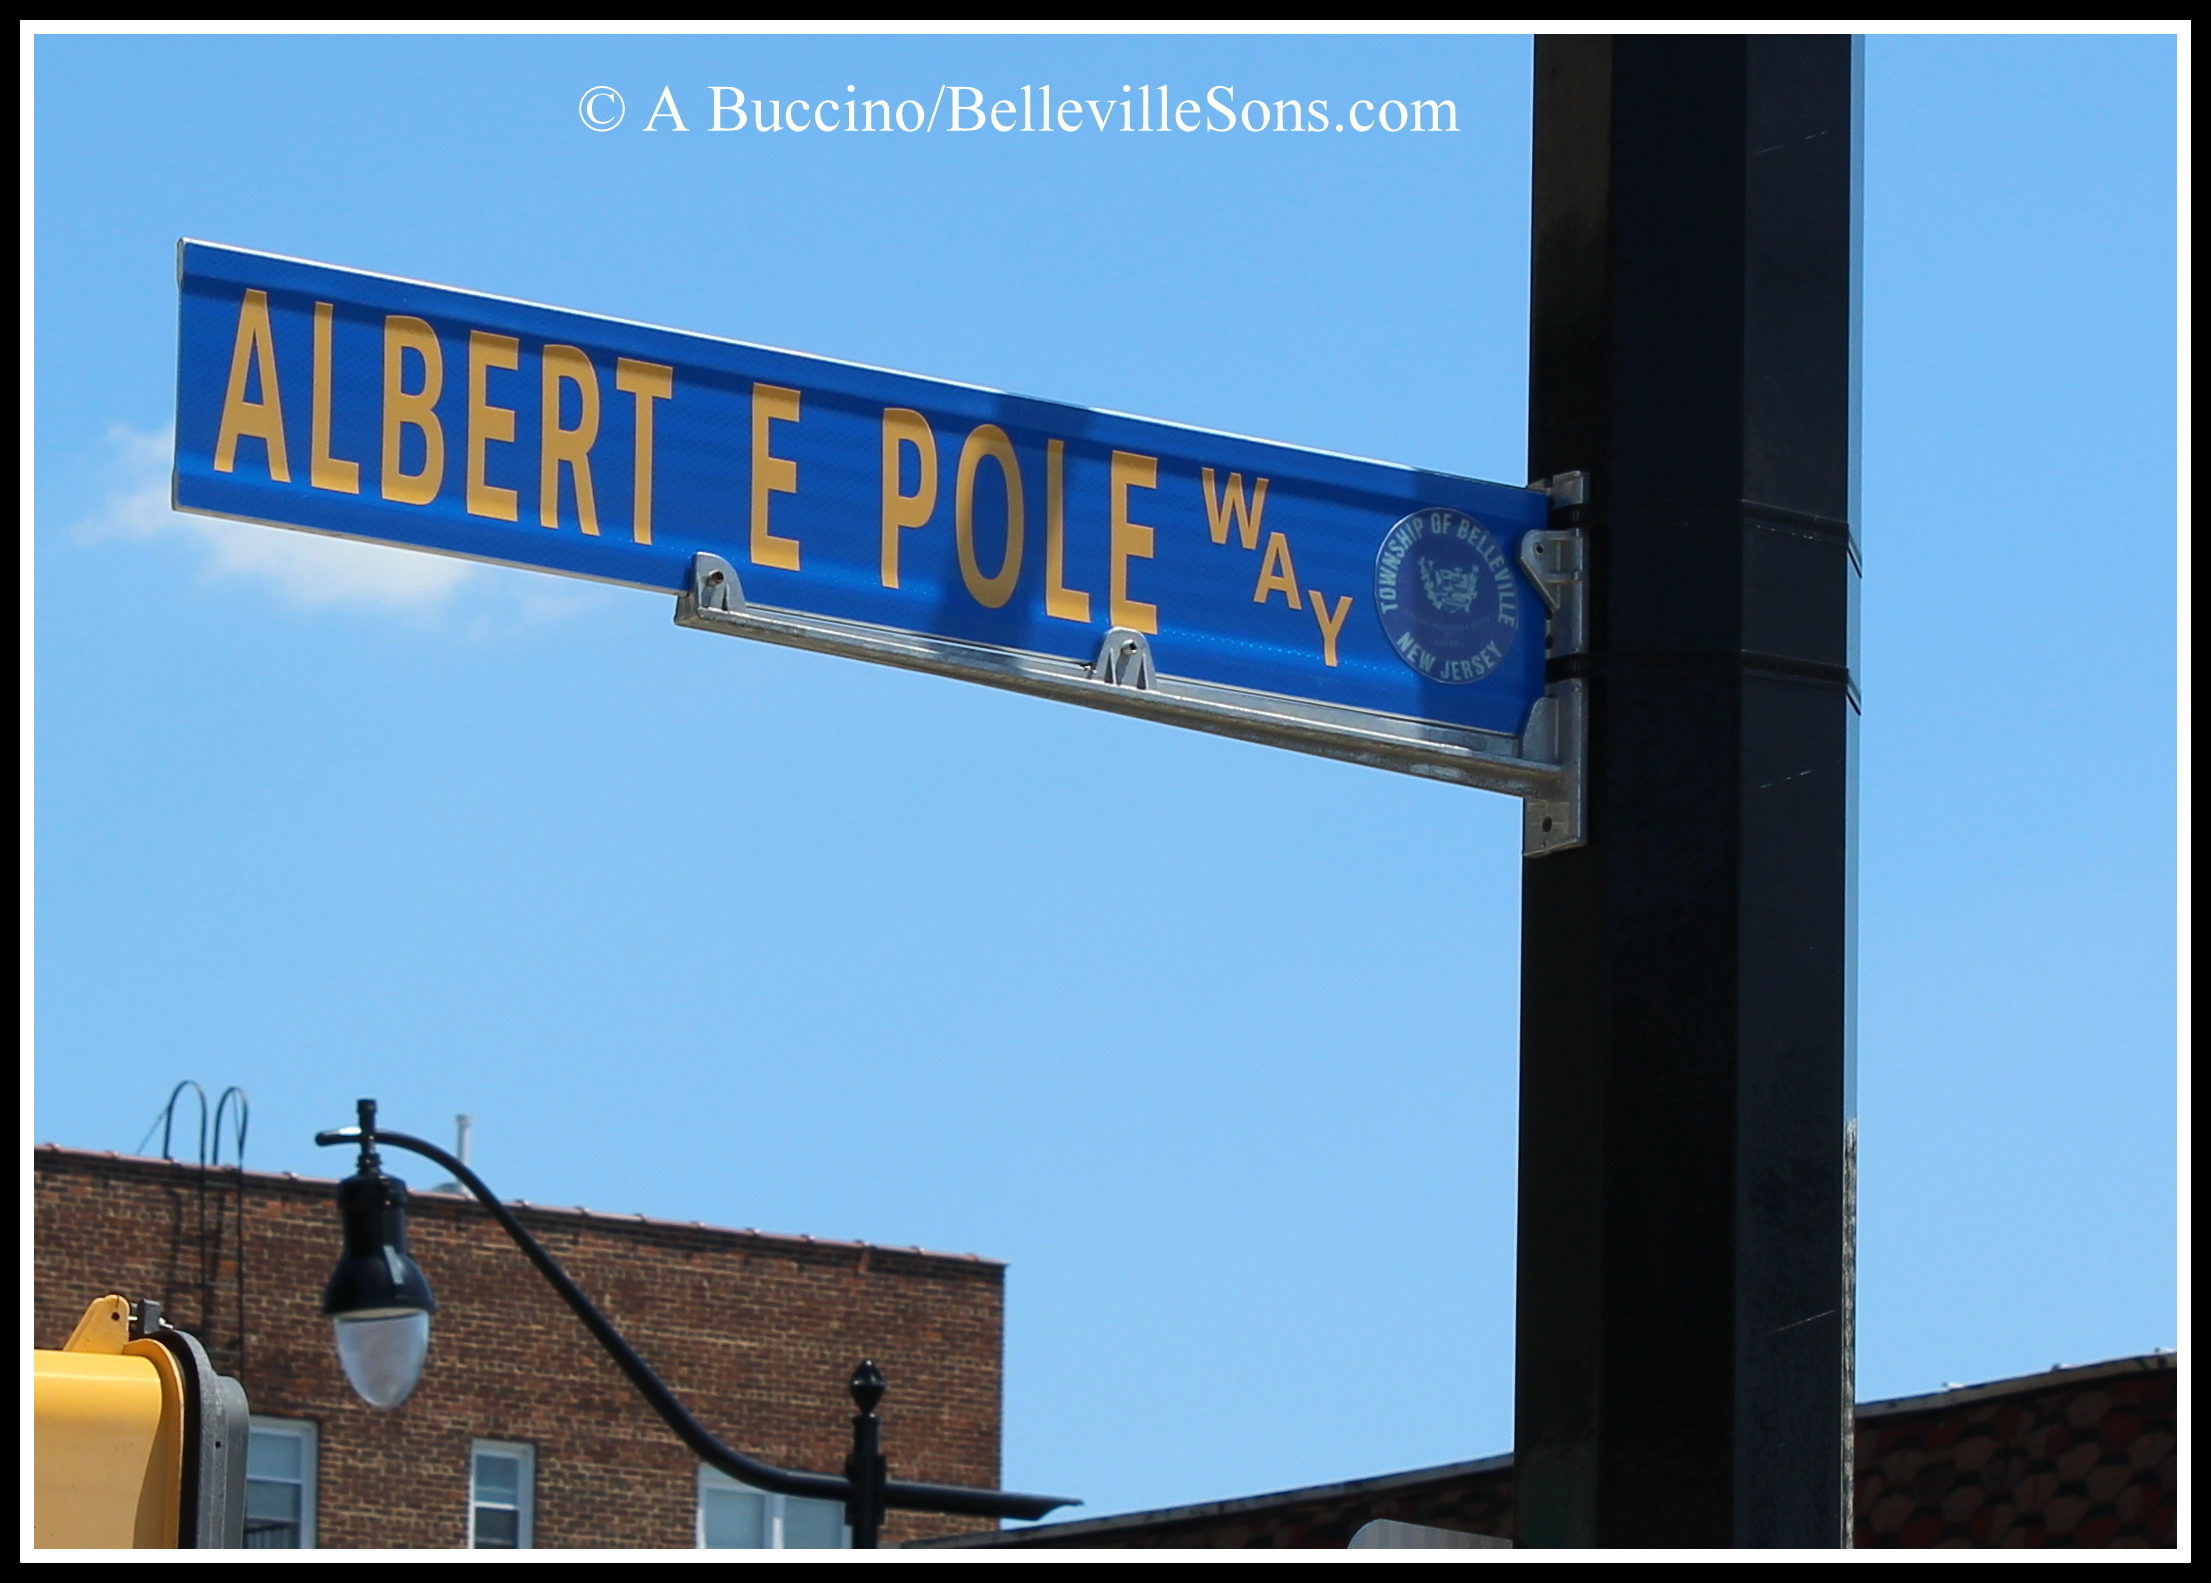 Albert E Pole Way, Belleville, N.J.